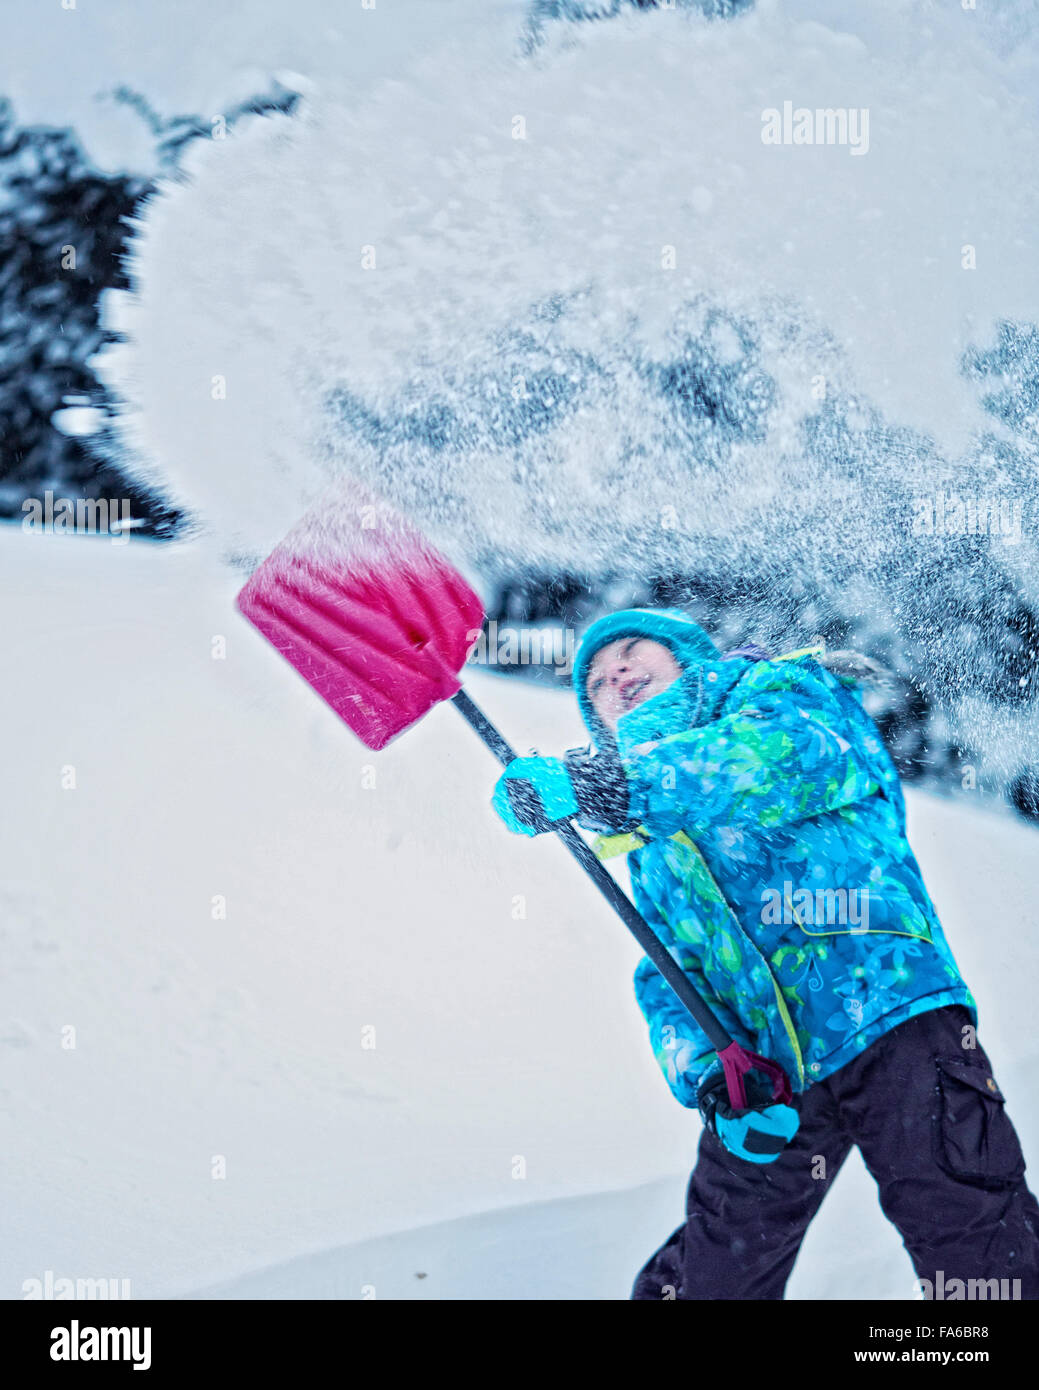 Girl shoveling snow in the yard with a spade - Stock Image